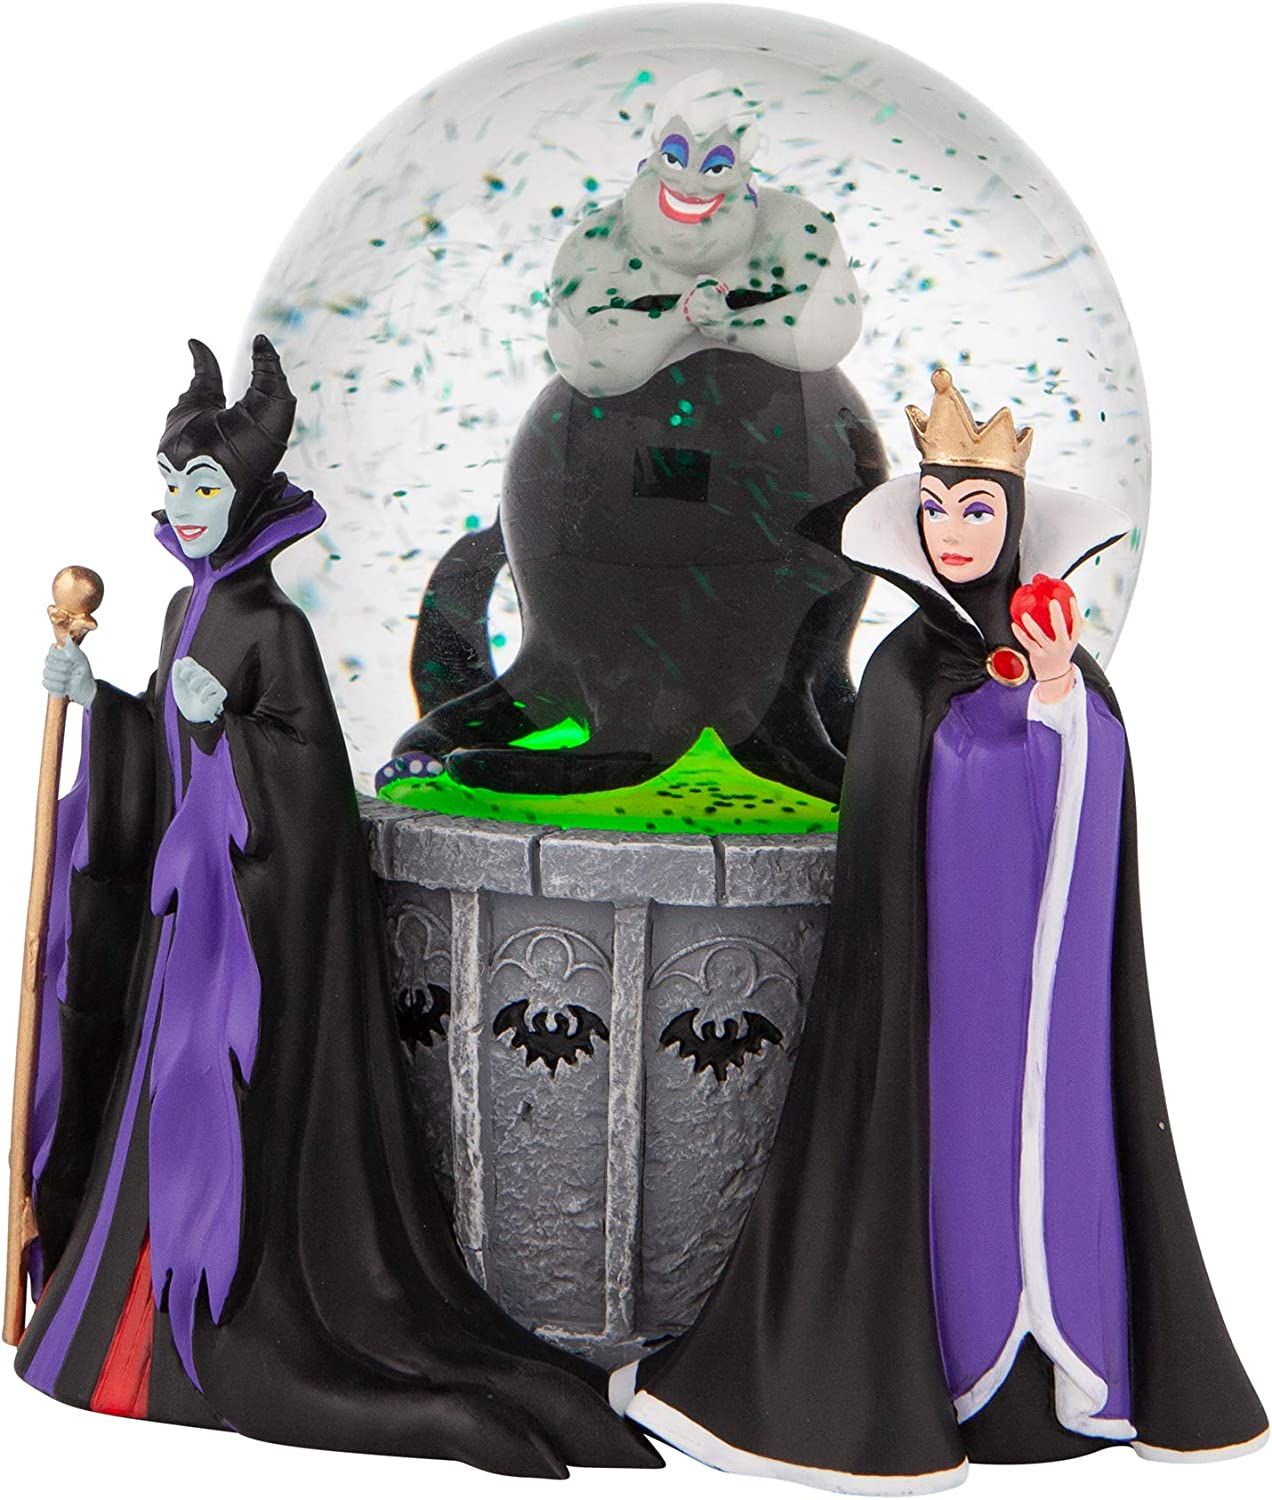 Department 56 Disney Villains Ursula, Maleficent and Evil Queen Lit Waterglobe Waterball, 5.91 Inch, Multicolor